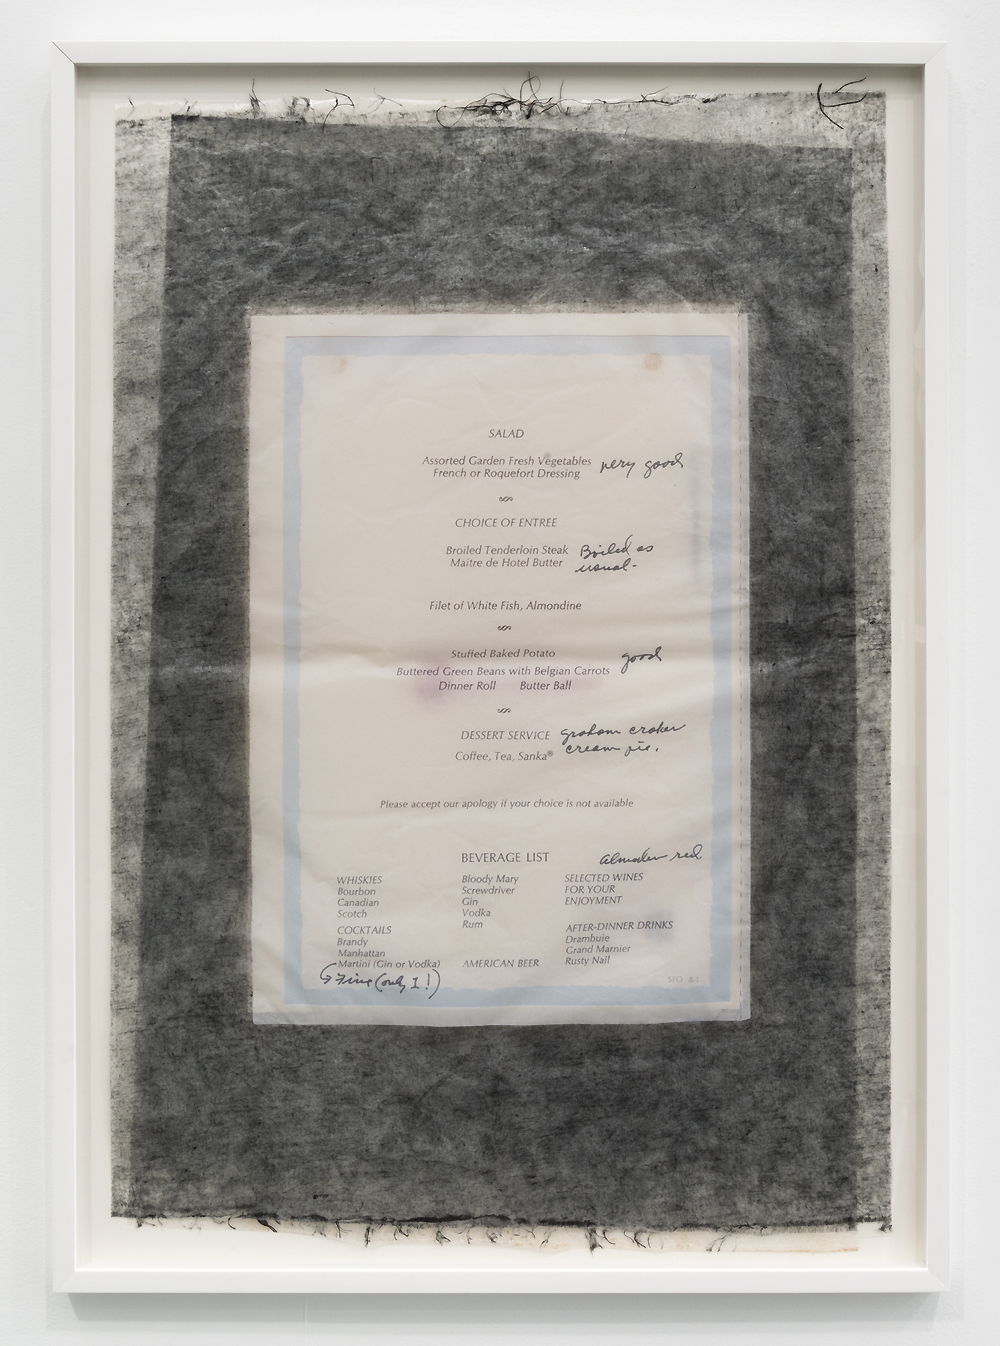 Valerie Snobeck / Catherine Sullivan,  Limited Good 7,  2013, peeled prints and linen on plastic, 43.4 x 31.2 inch framed